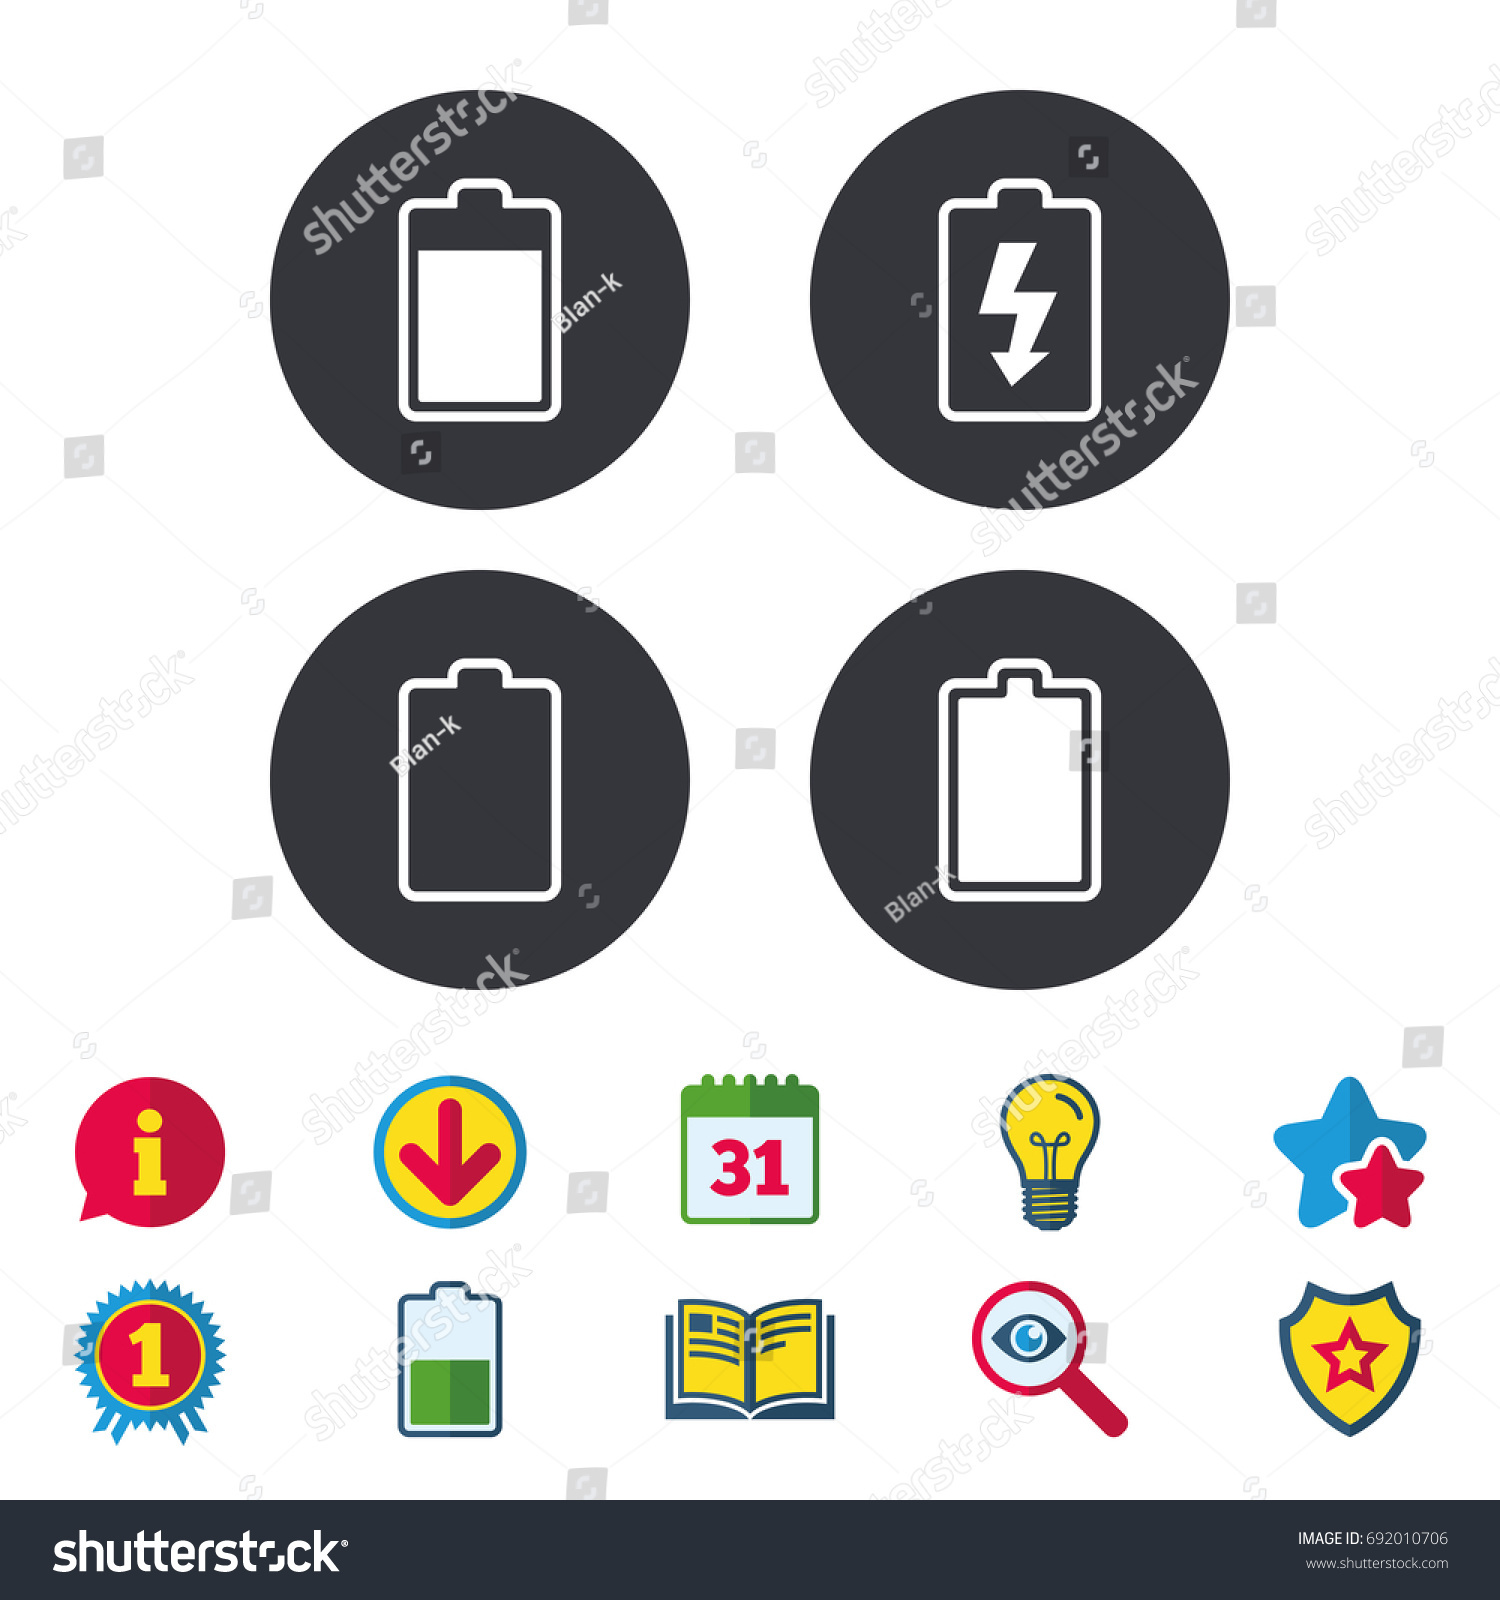 Battery charging icons electricity signs symbols stock vector electricity signs symbols charge levels full empty calendar buycottarizona Choice Image